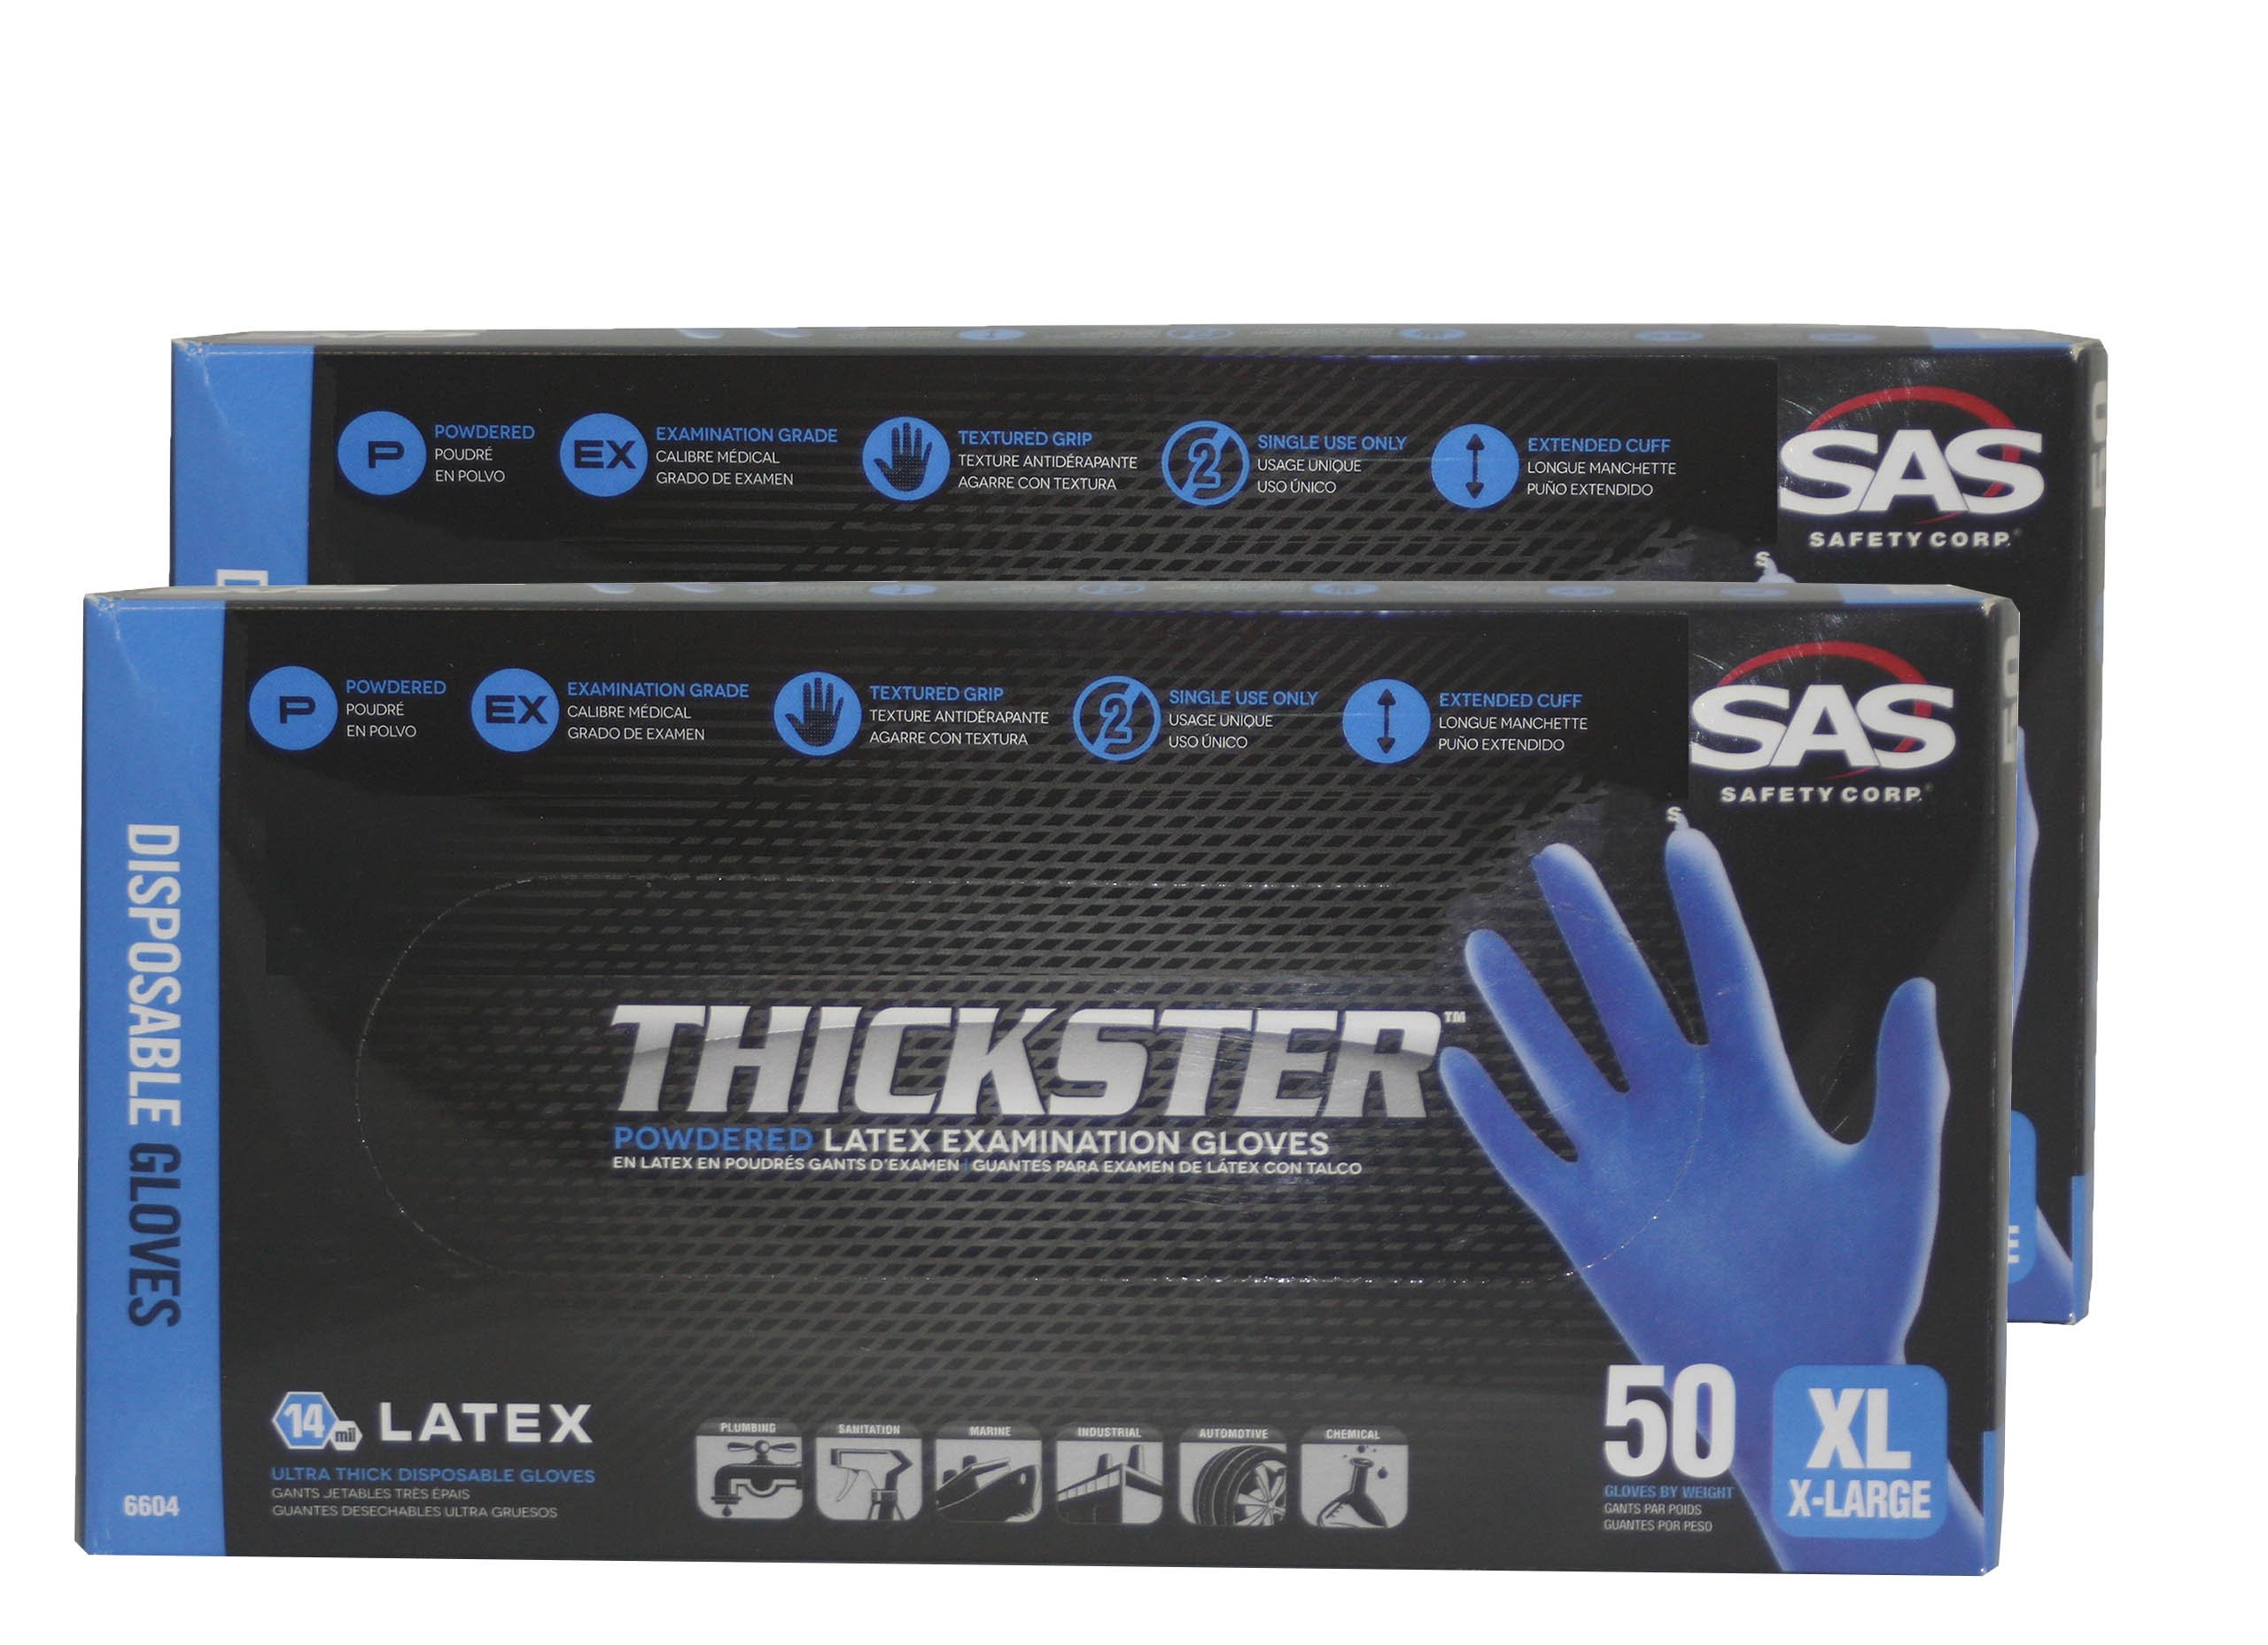 SAS 6604 (2 boxes) Thickster Textured Safety Latex Gloves, X-Large